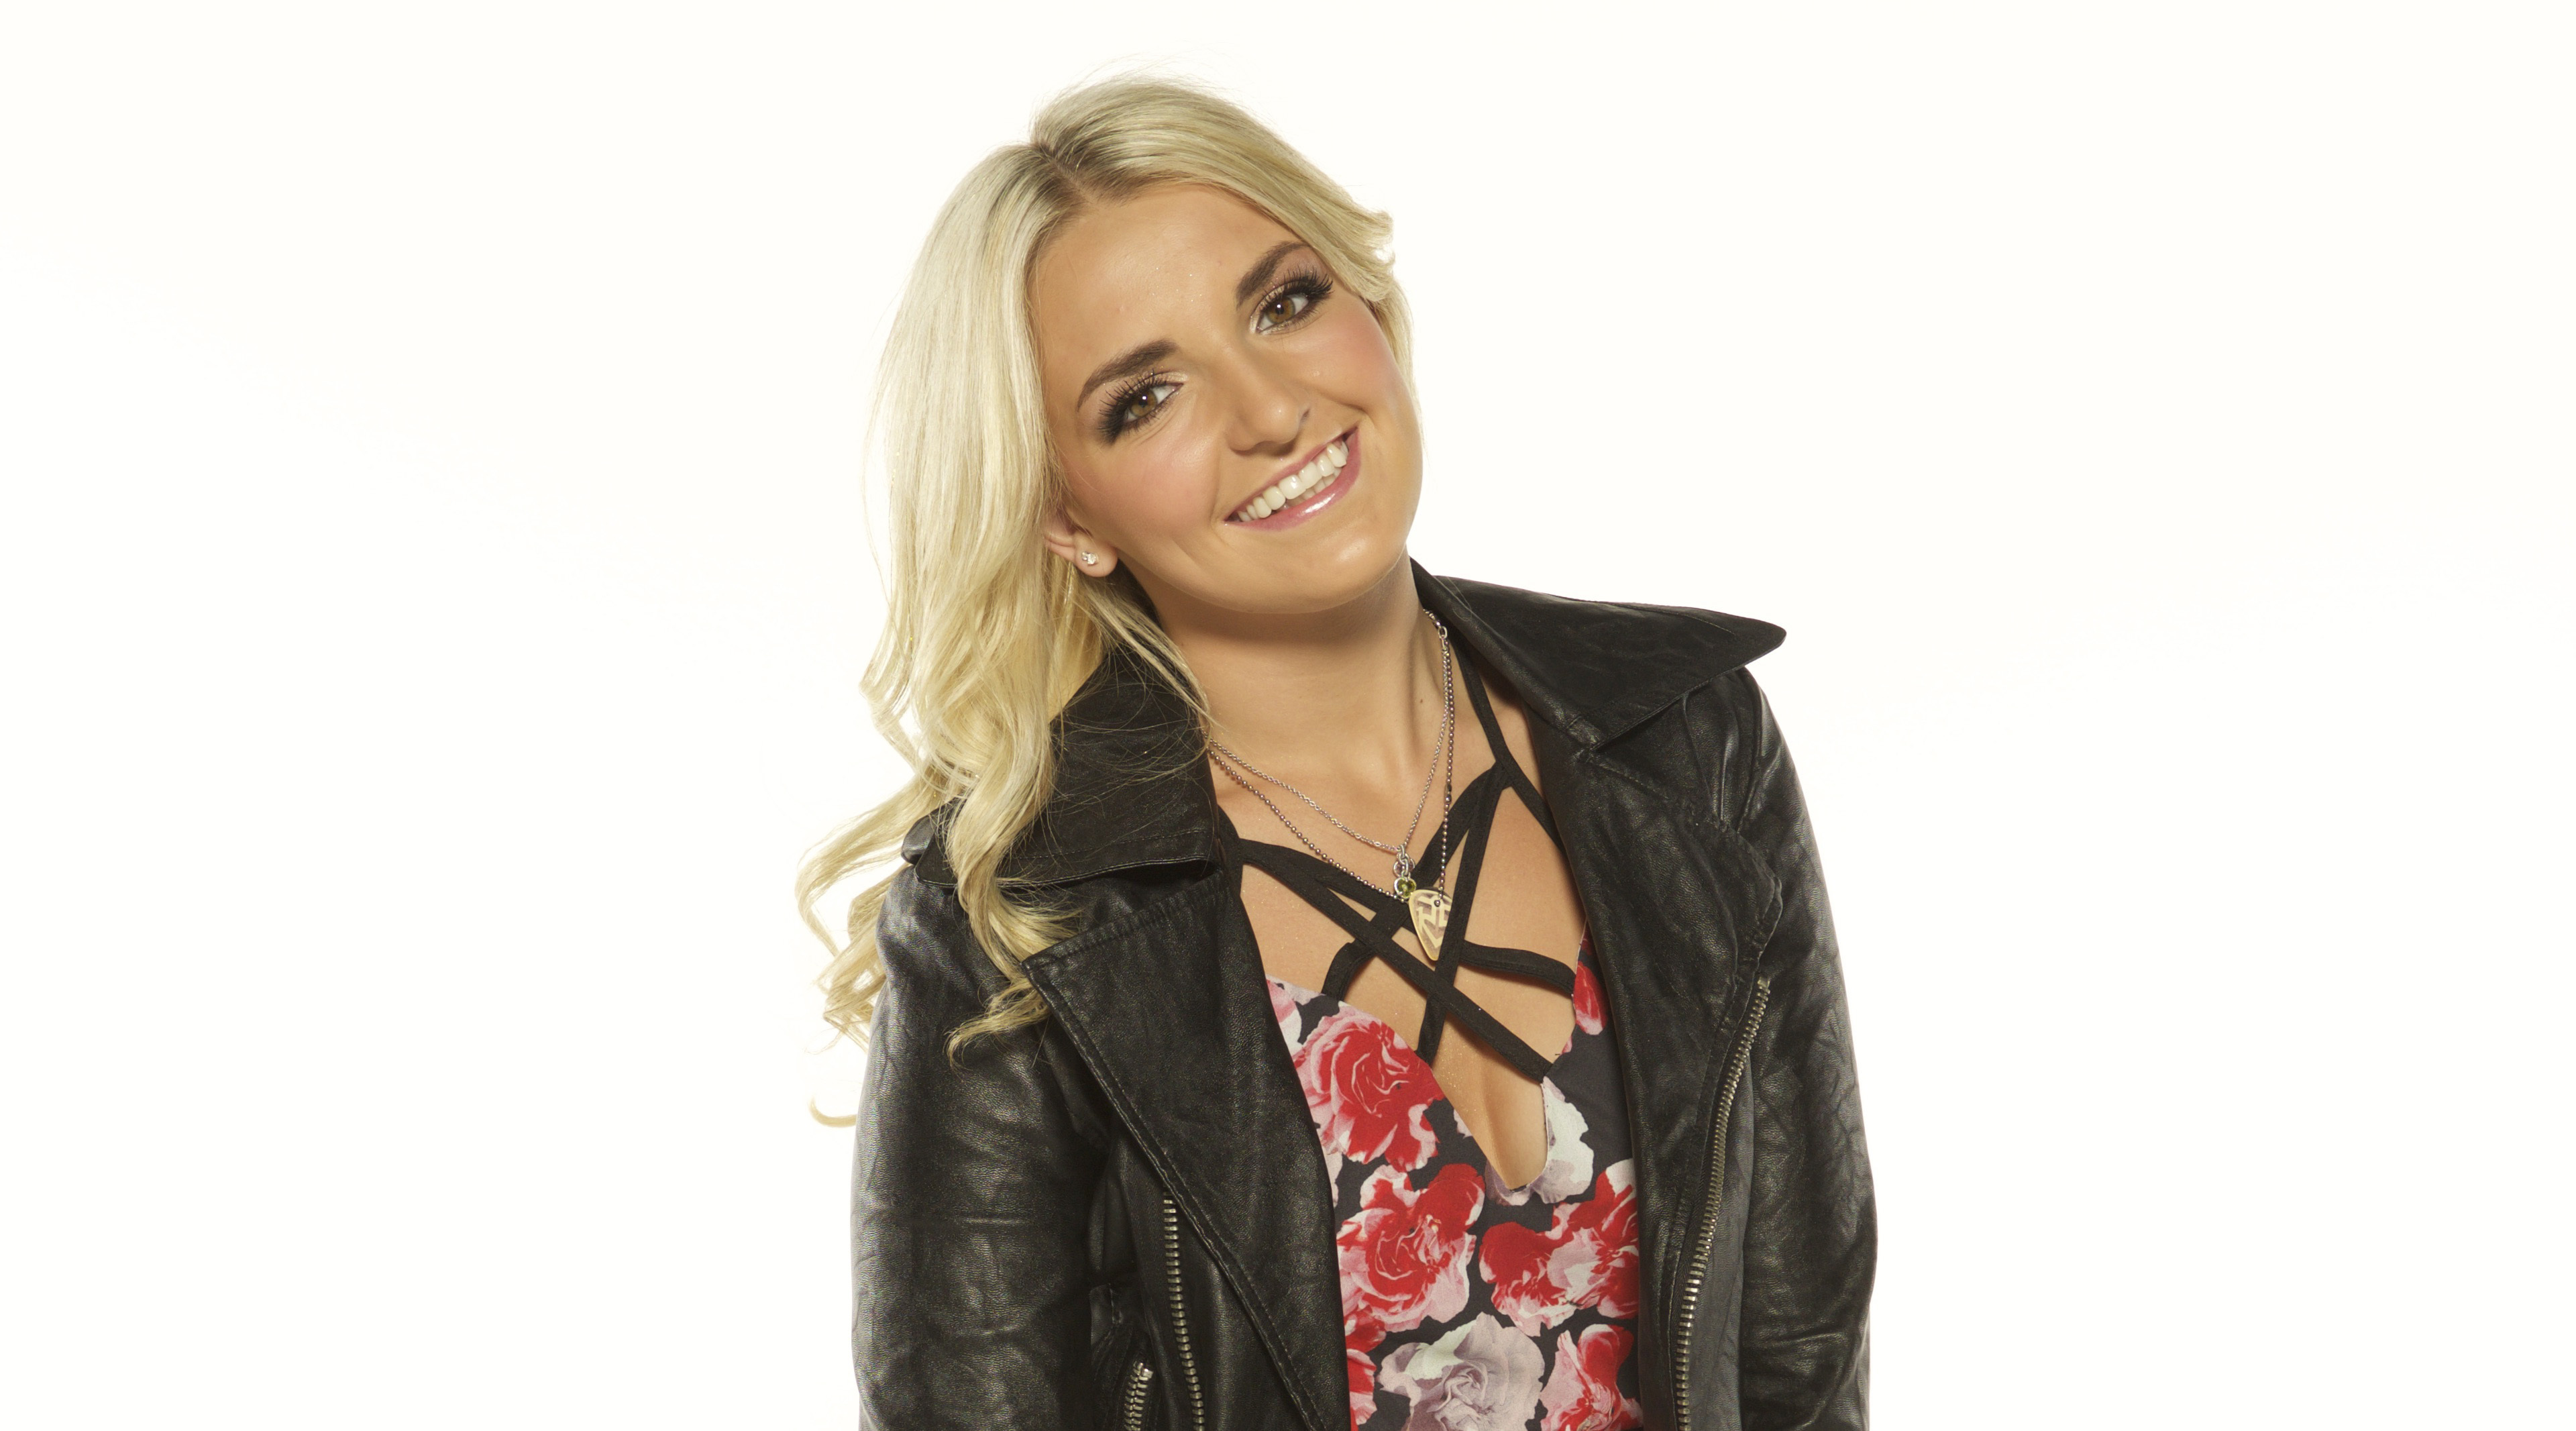 R5 Keyboardist and Singer Rydel Lynch On Girl Power Be Yourself Quotes For Girls